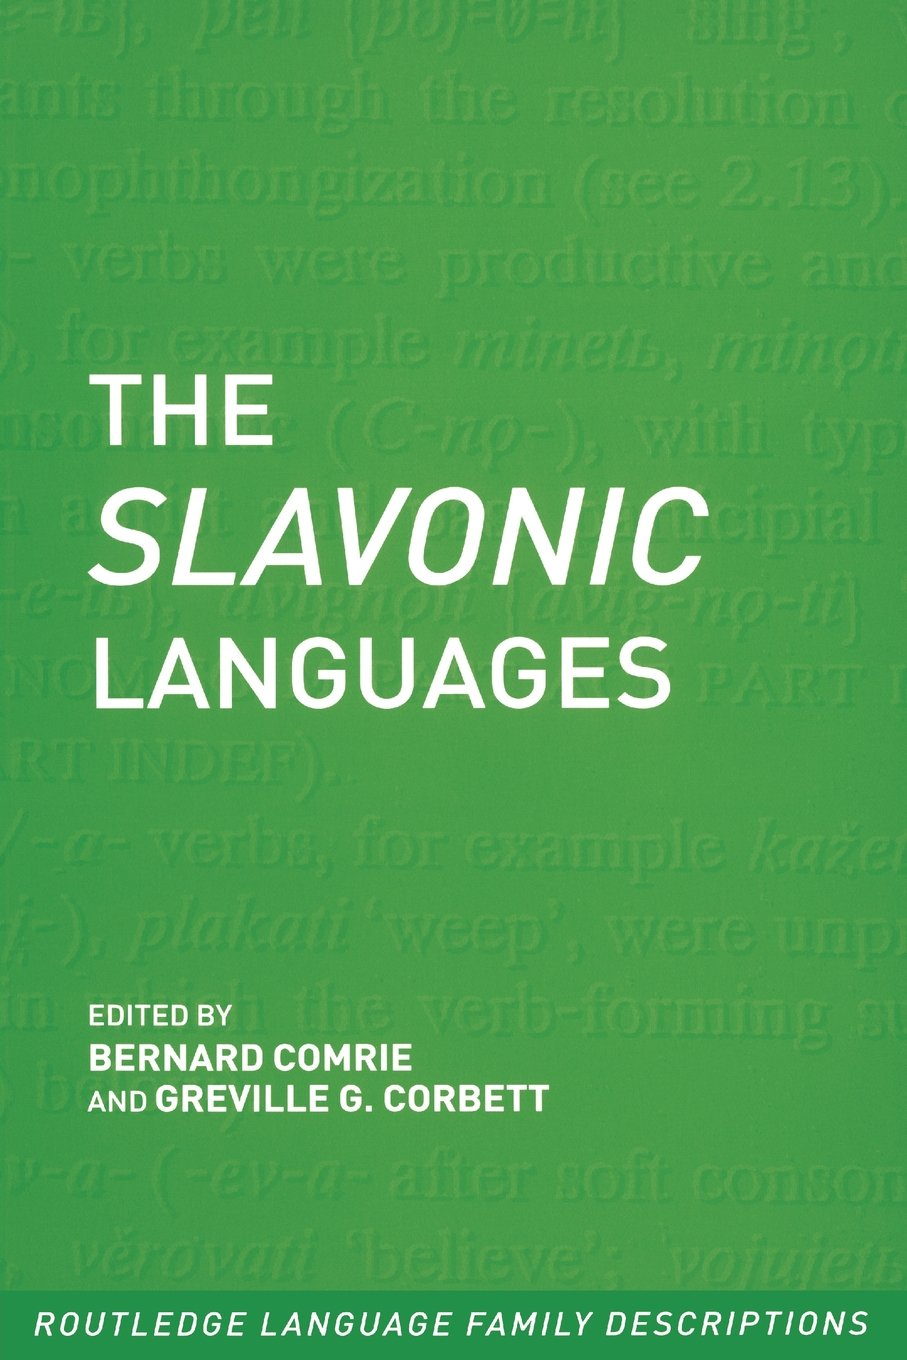 The Slavonic Languages (Routledge Language Family Series): Amazon.co.uk:  Professor Greville Corbett, Professor Bernard Comrie: 9780415280785: Books